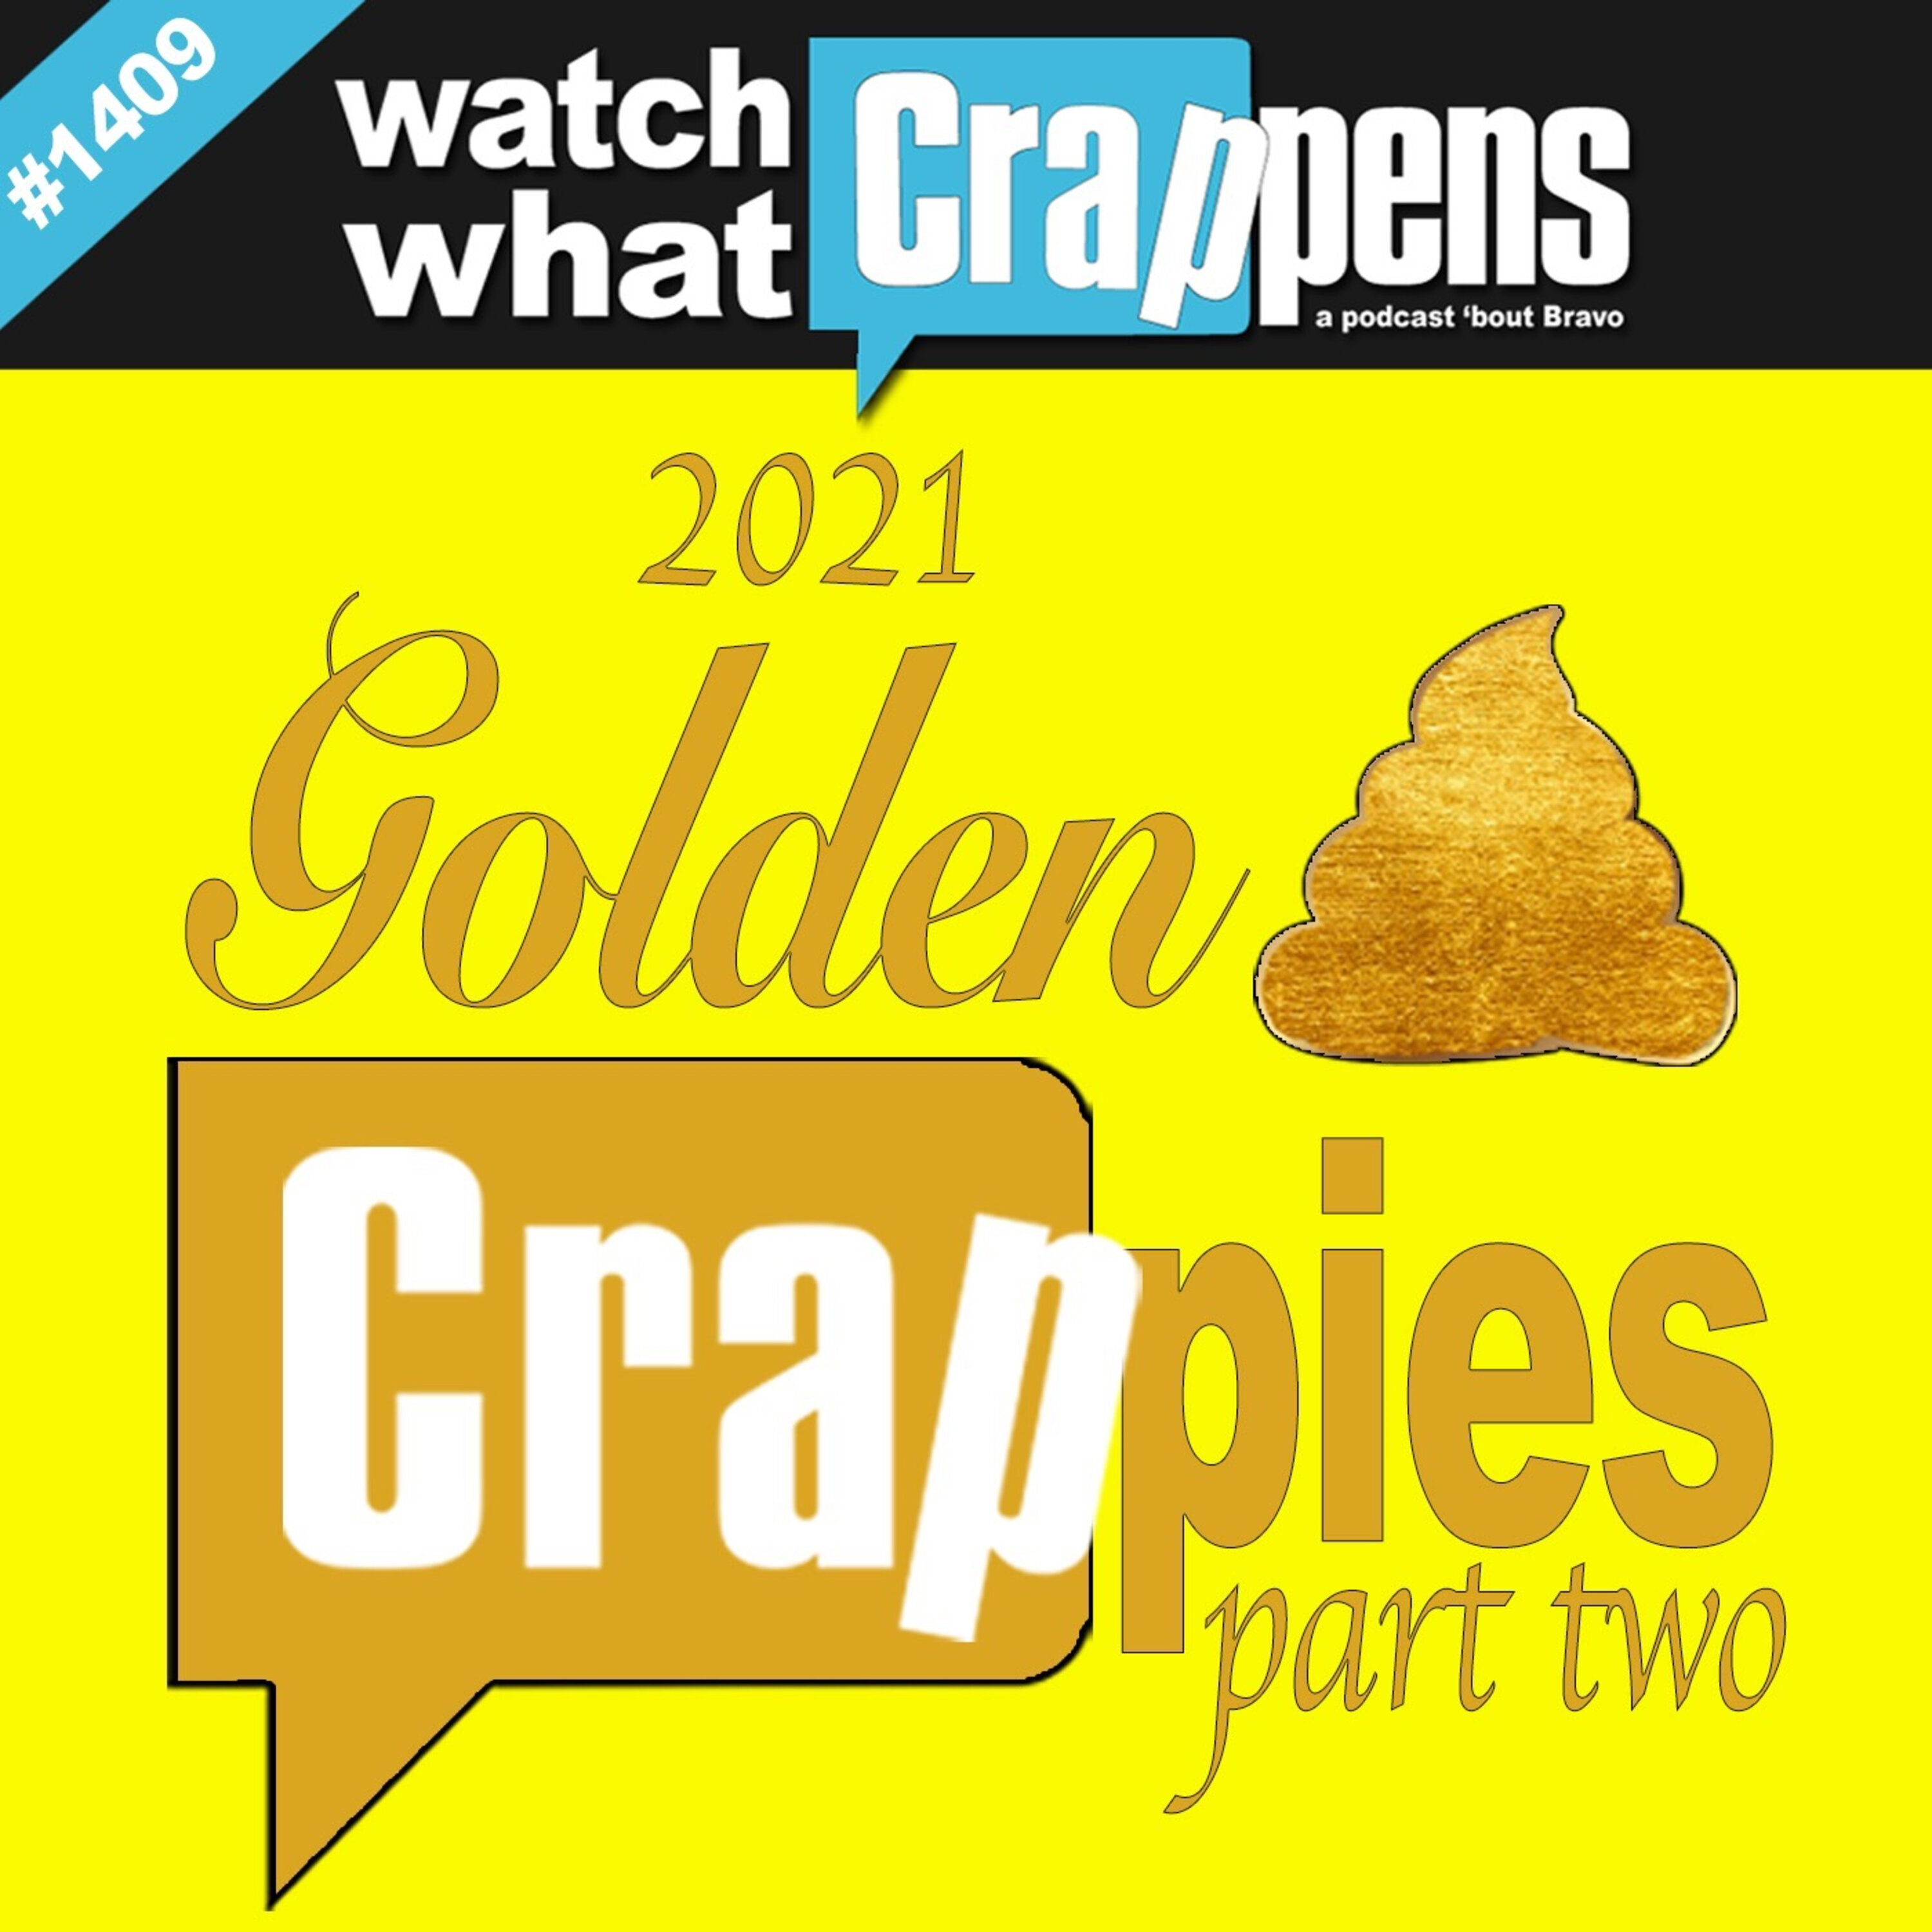 2021 Golden Crappies Part Two